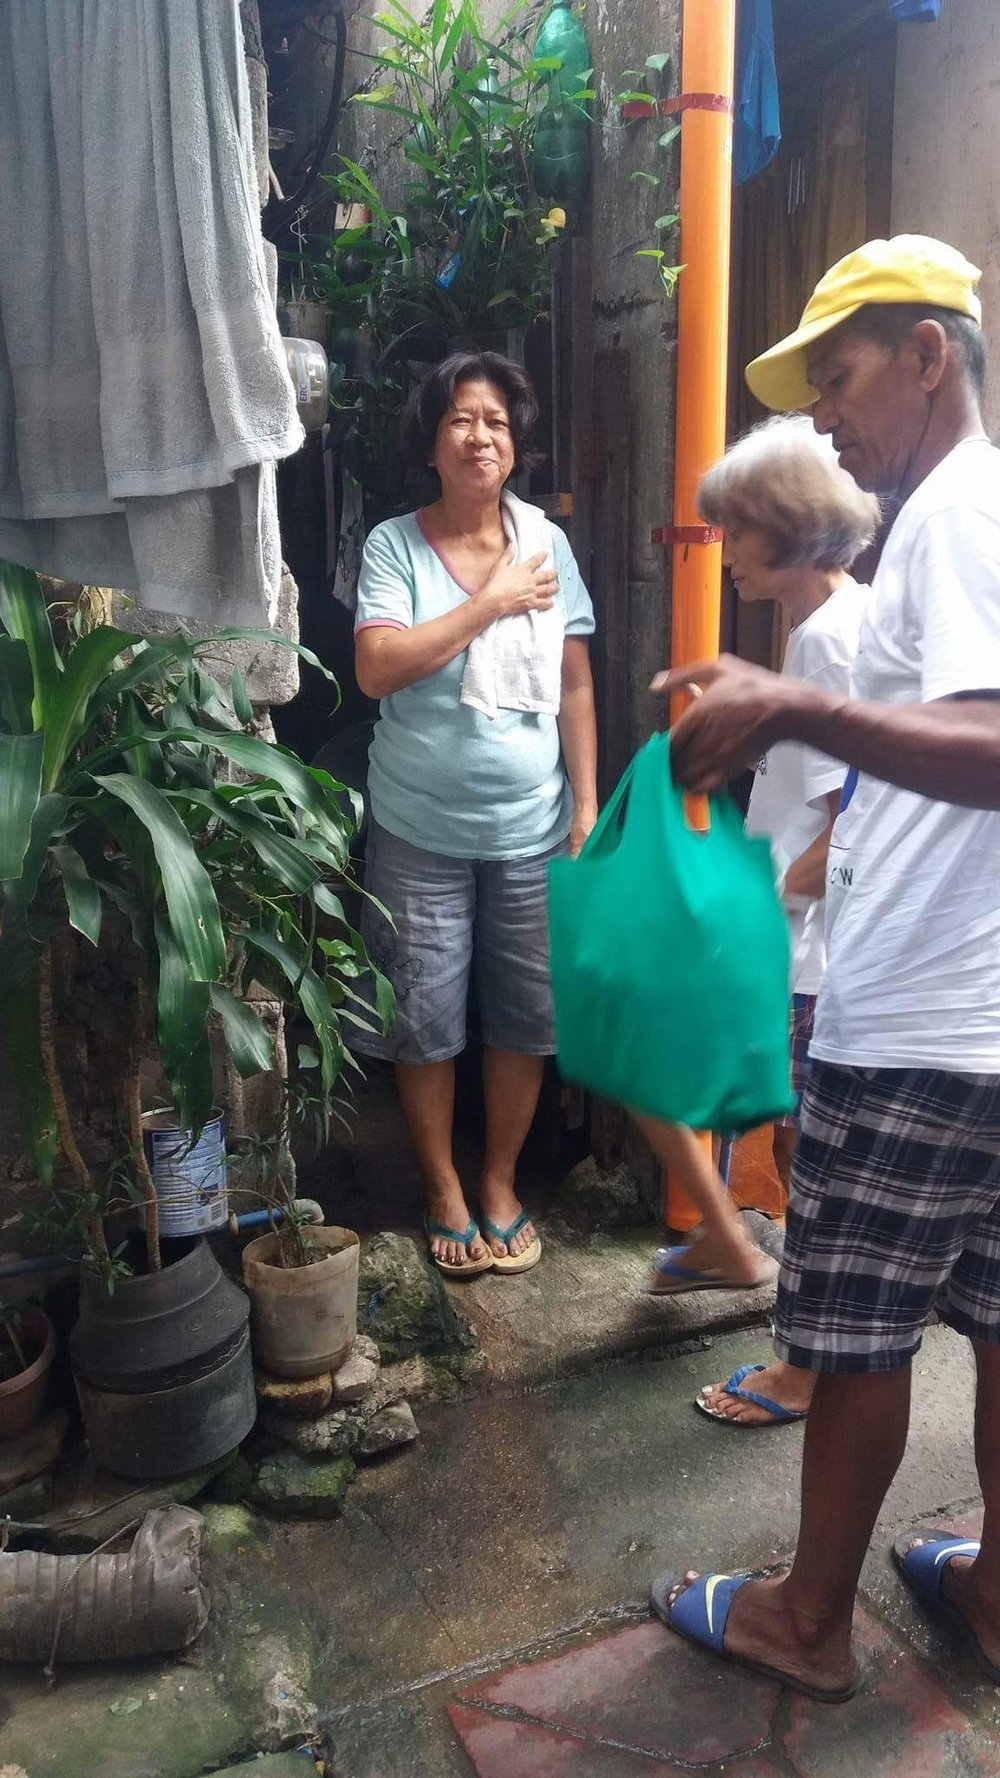 This woman is grateful to receive food from Compassion Philippines.